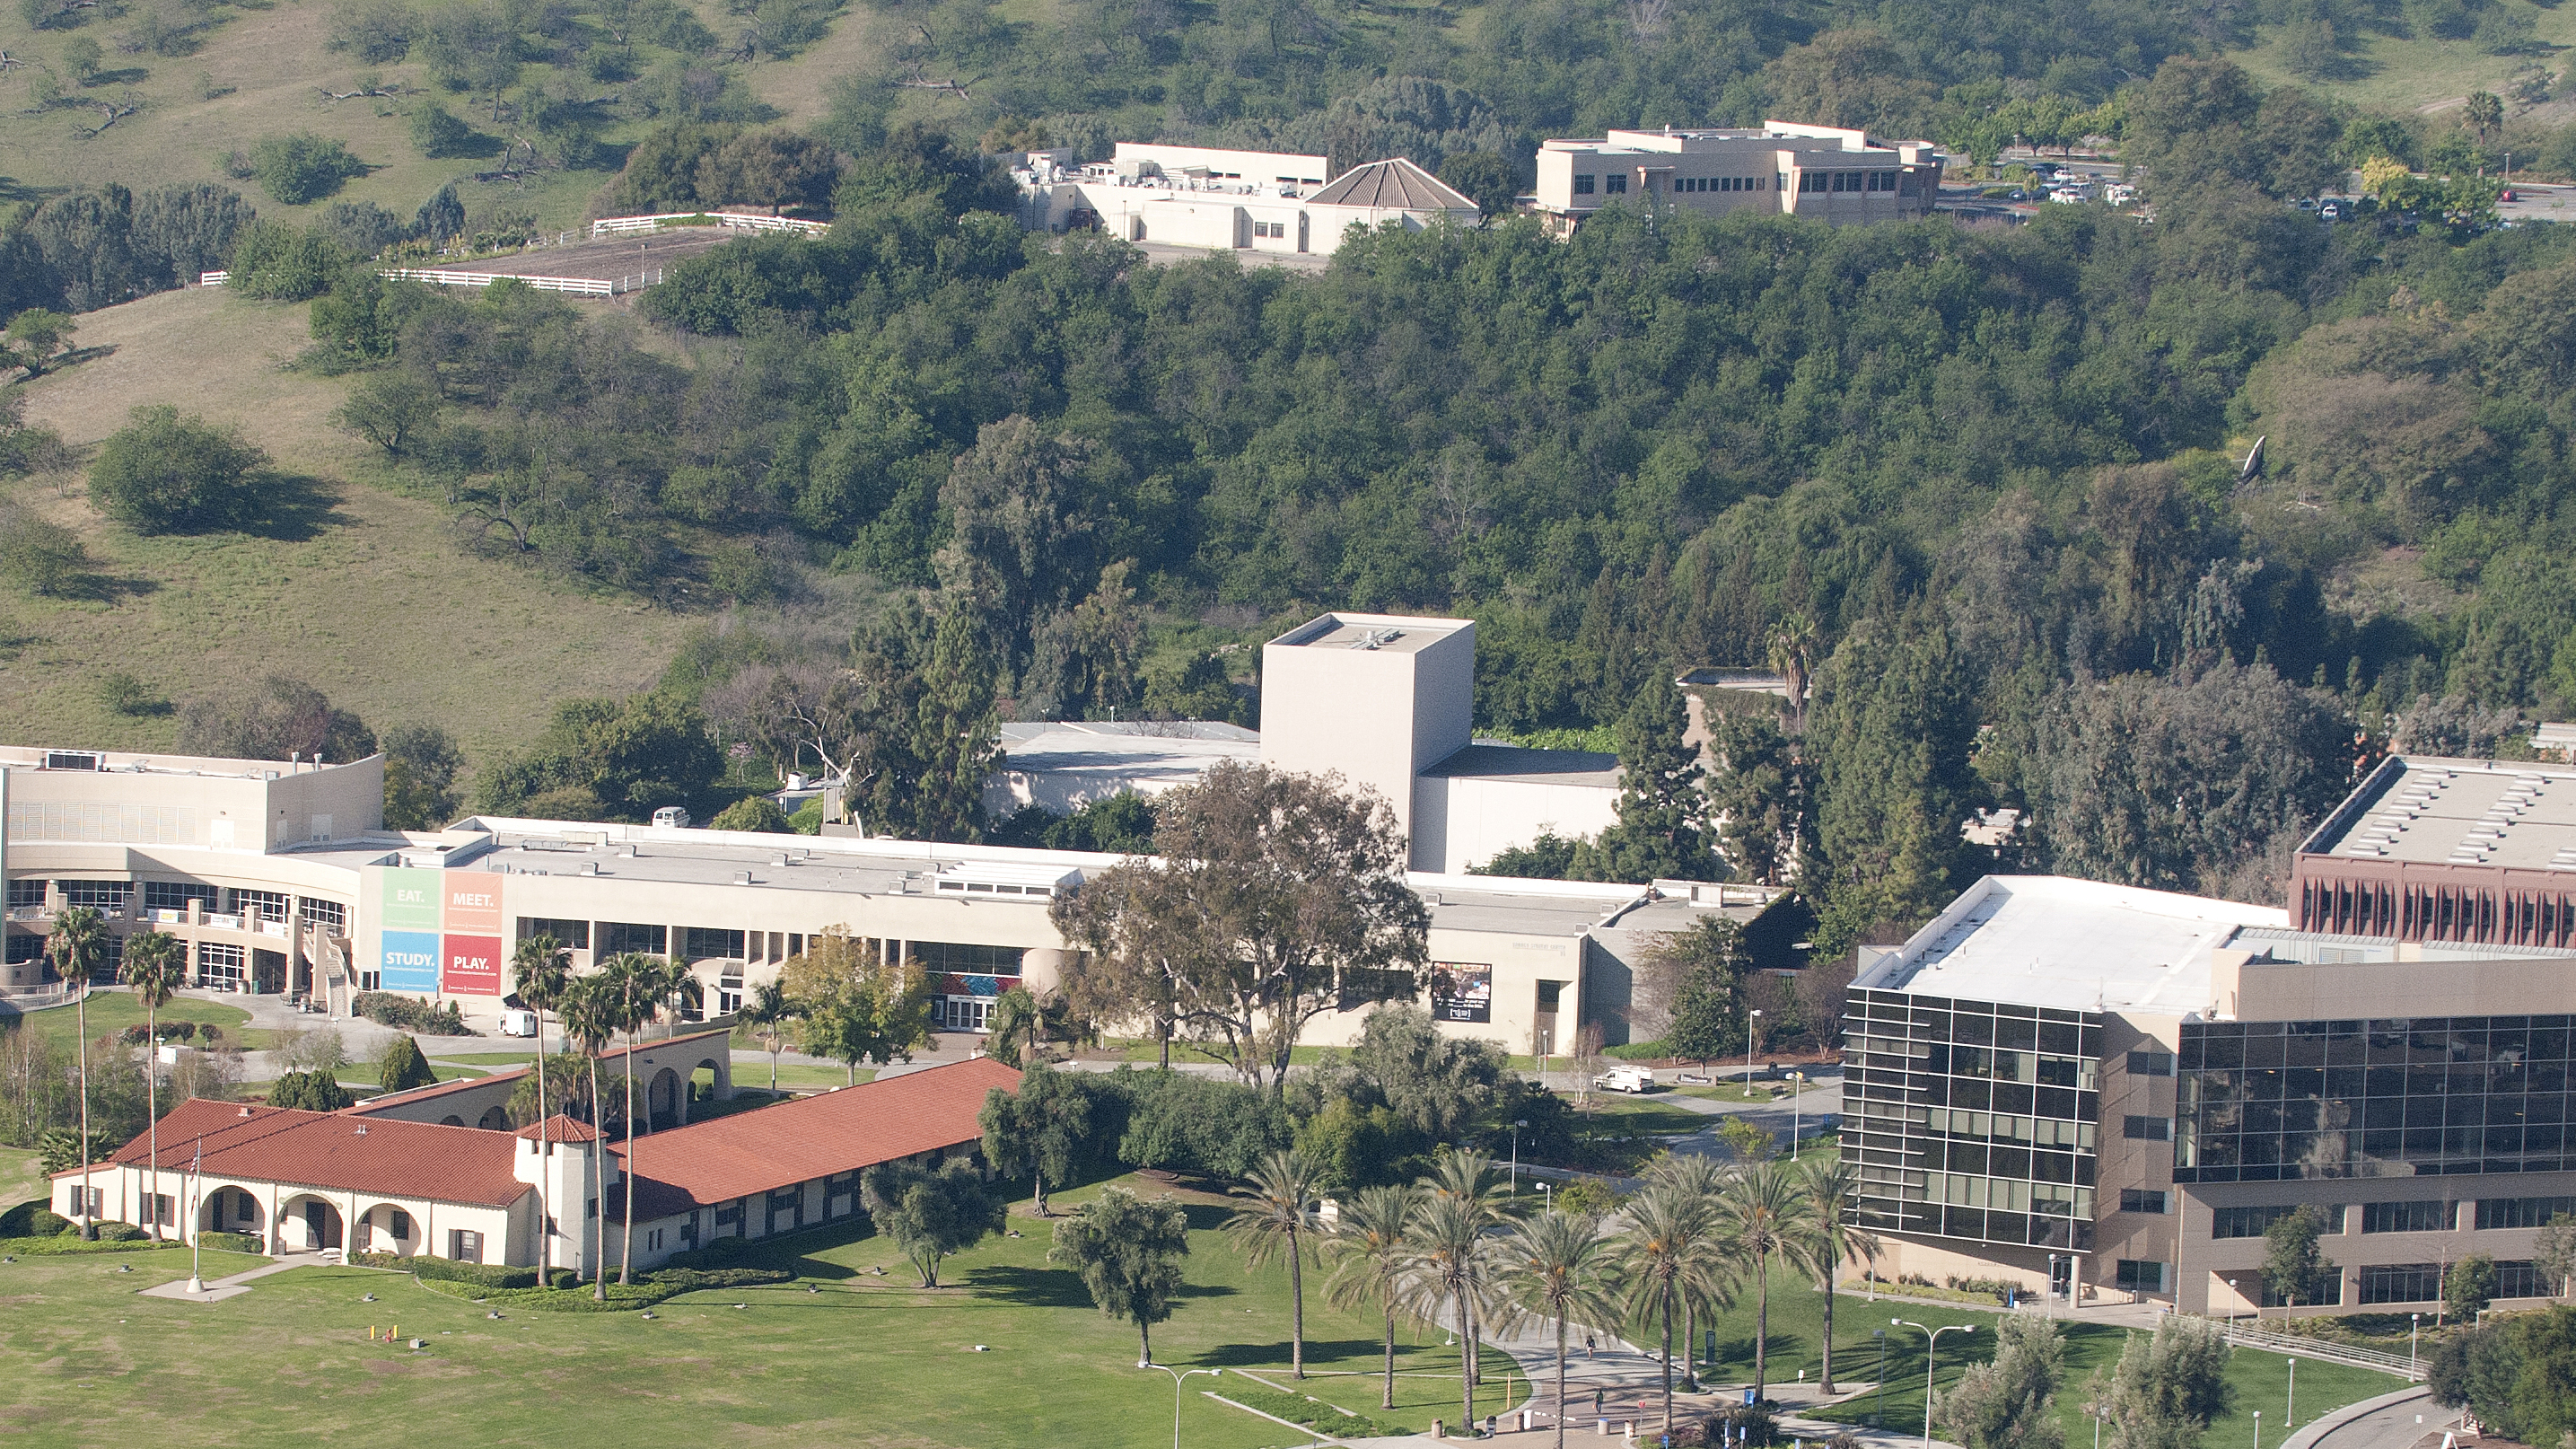 The partnership between Cal Poly Pomona and the U.S. Army Corps of Engineers will open up learning opportunities for students.